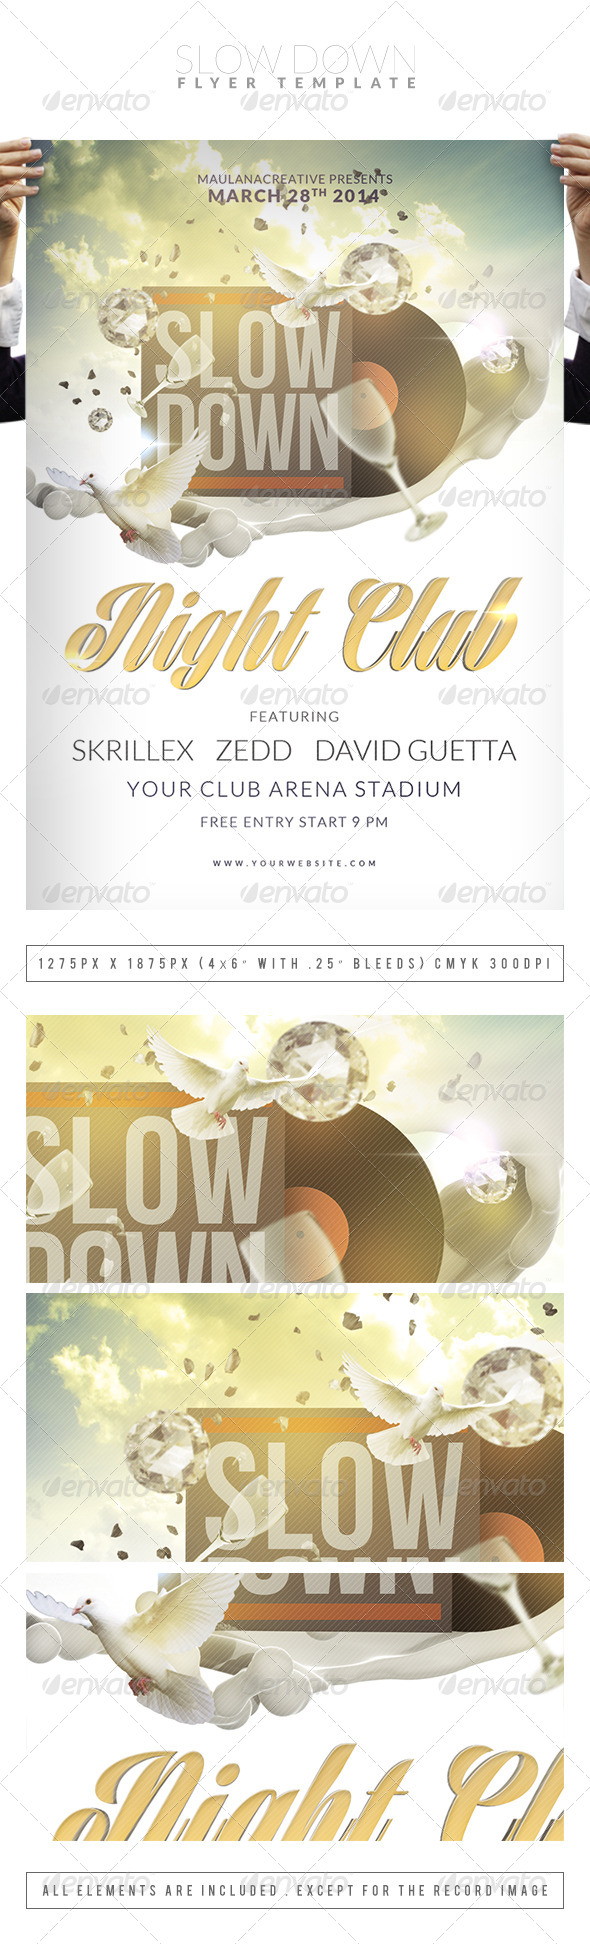 GraphicRiver Slow Down Flyer Template 7256971